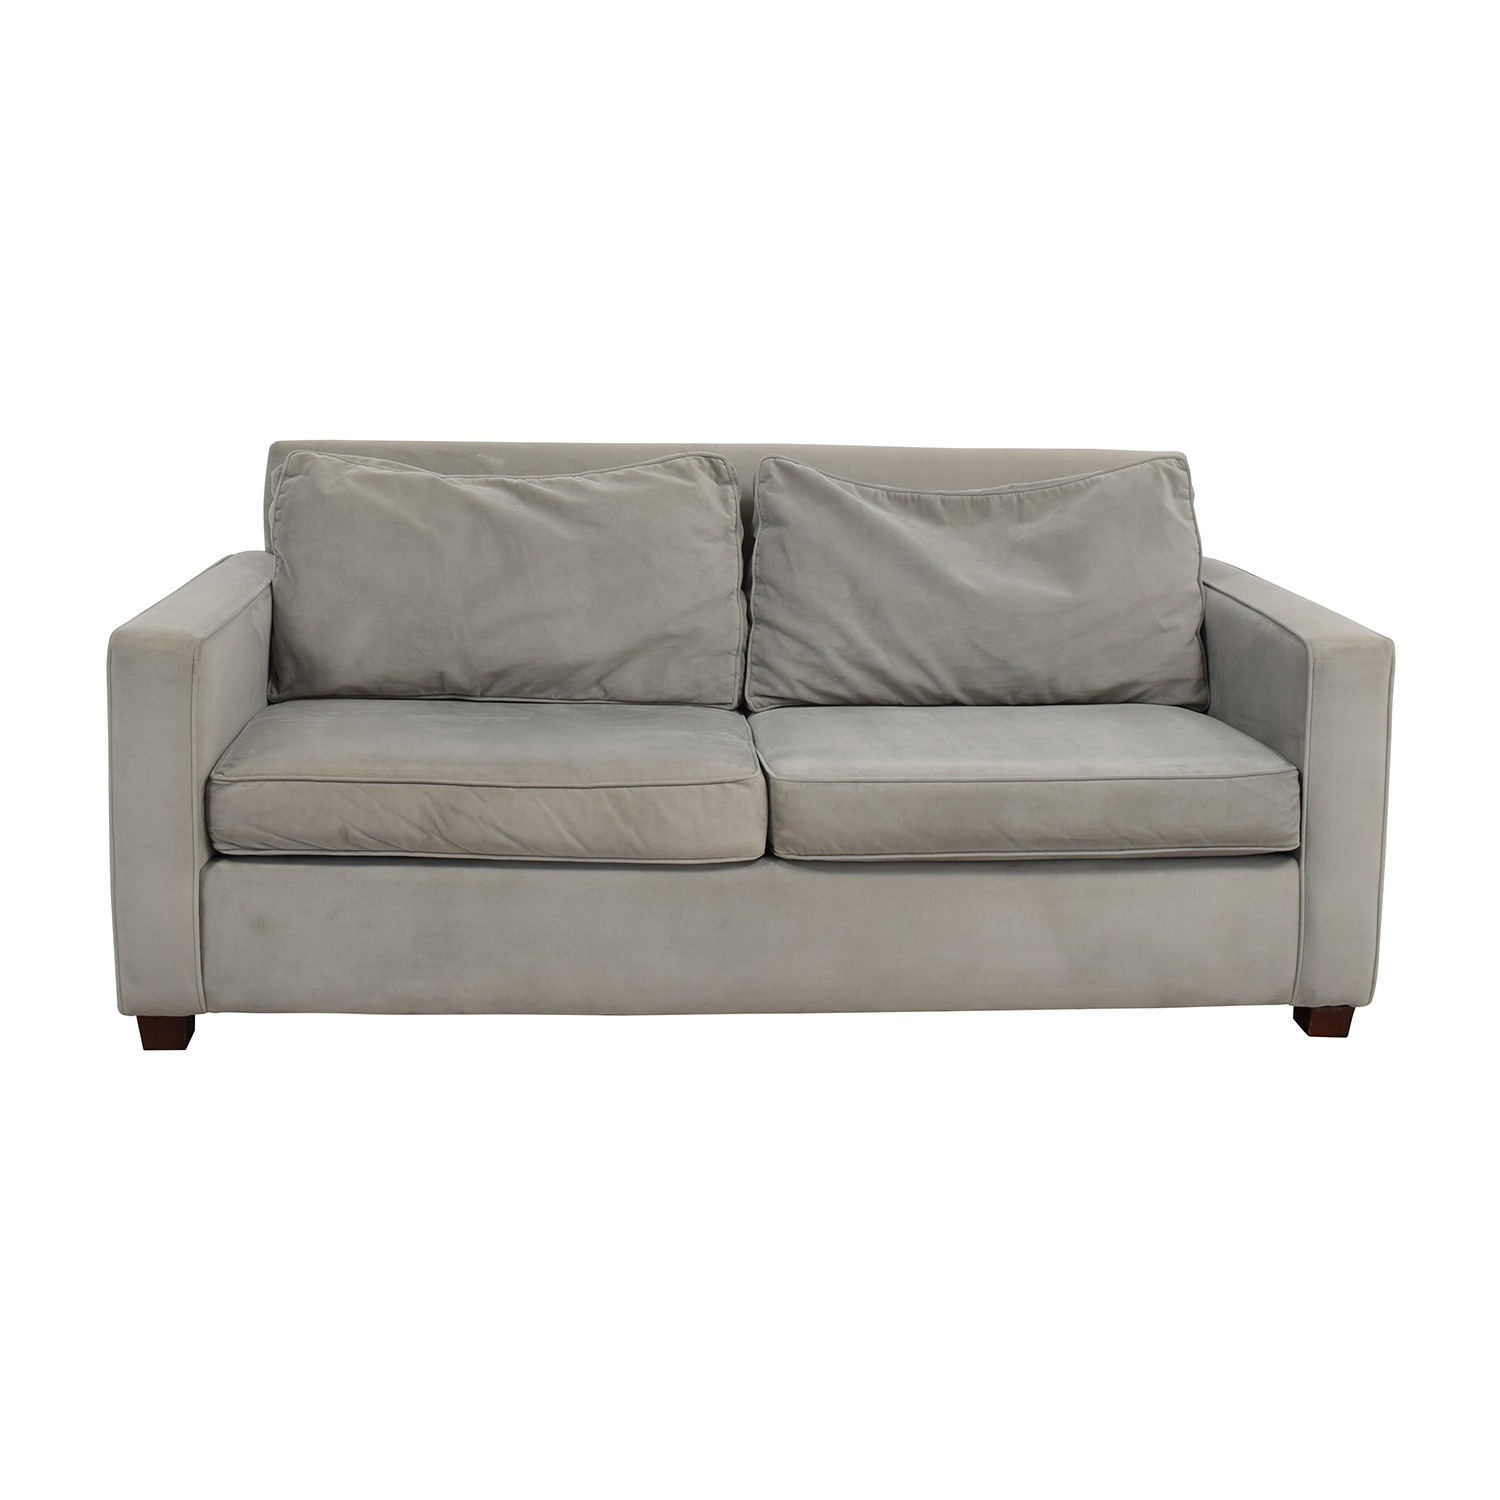 West Elm West Elm Henry Two-Seat Sofa dimensions